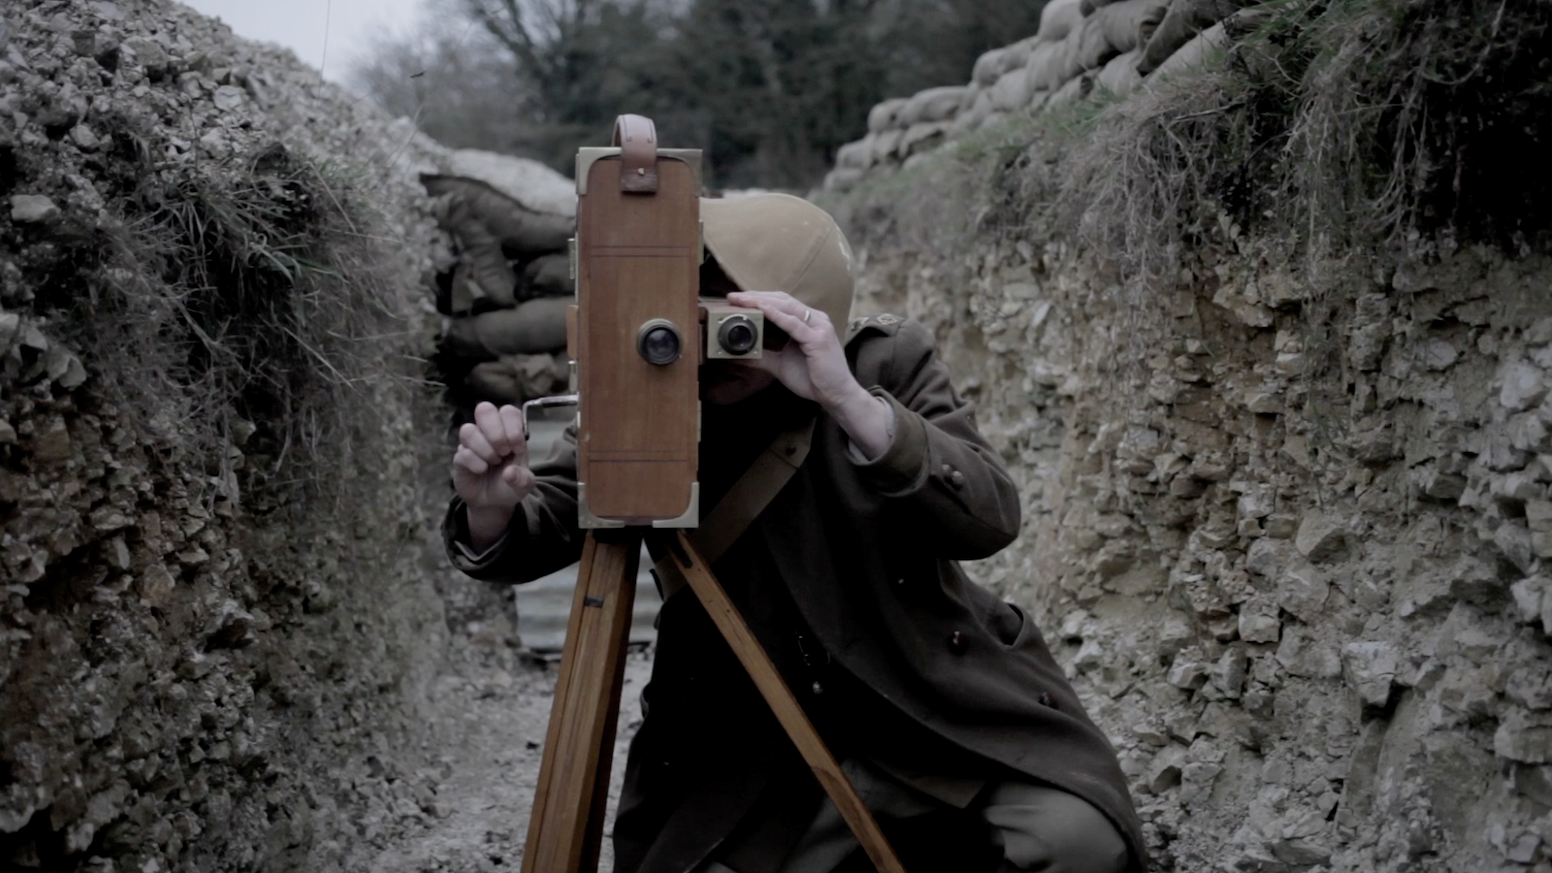 A First World War short film  co-directed by a filmmaker and a military historian. A factually-accurate reconstructive drama of a cinematographer on the first day of the Somme.